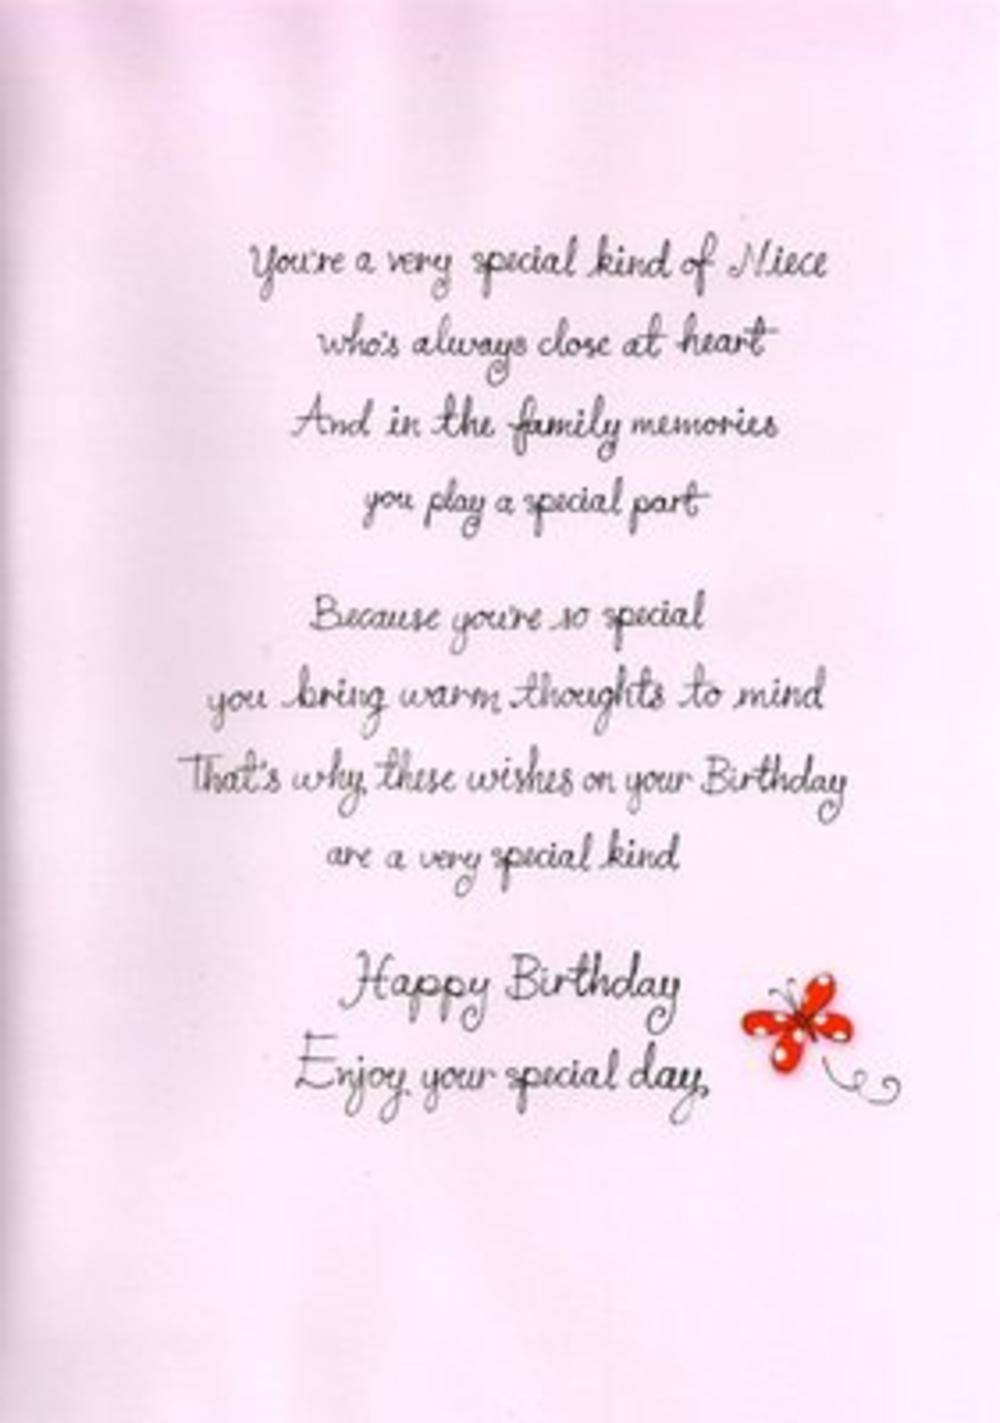 valentines day quotes for nieces - Niece Birthday Poetry In Motion Card Cards